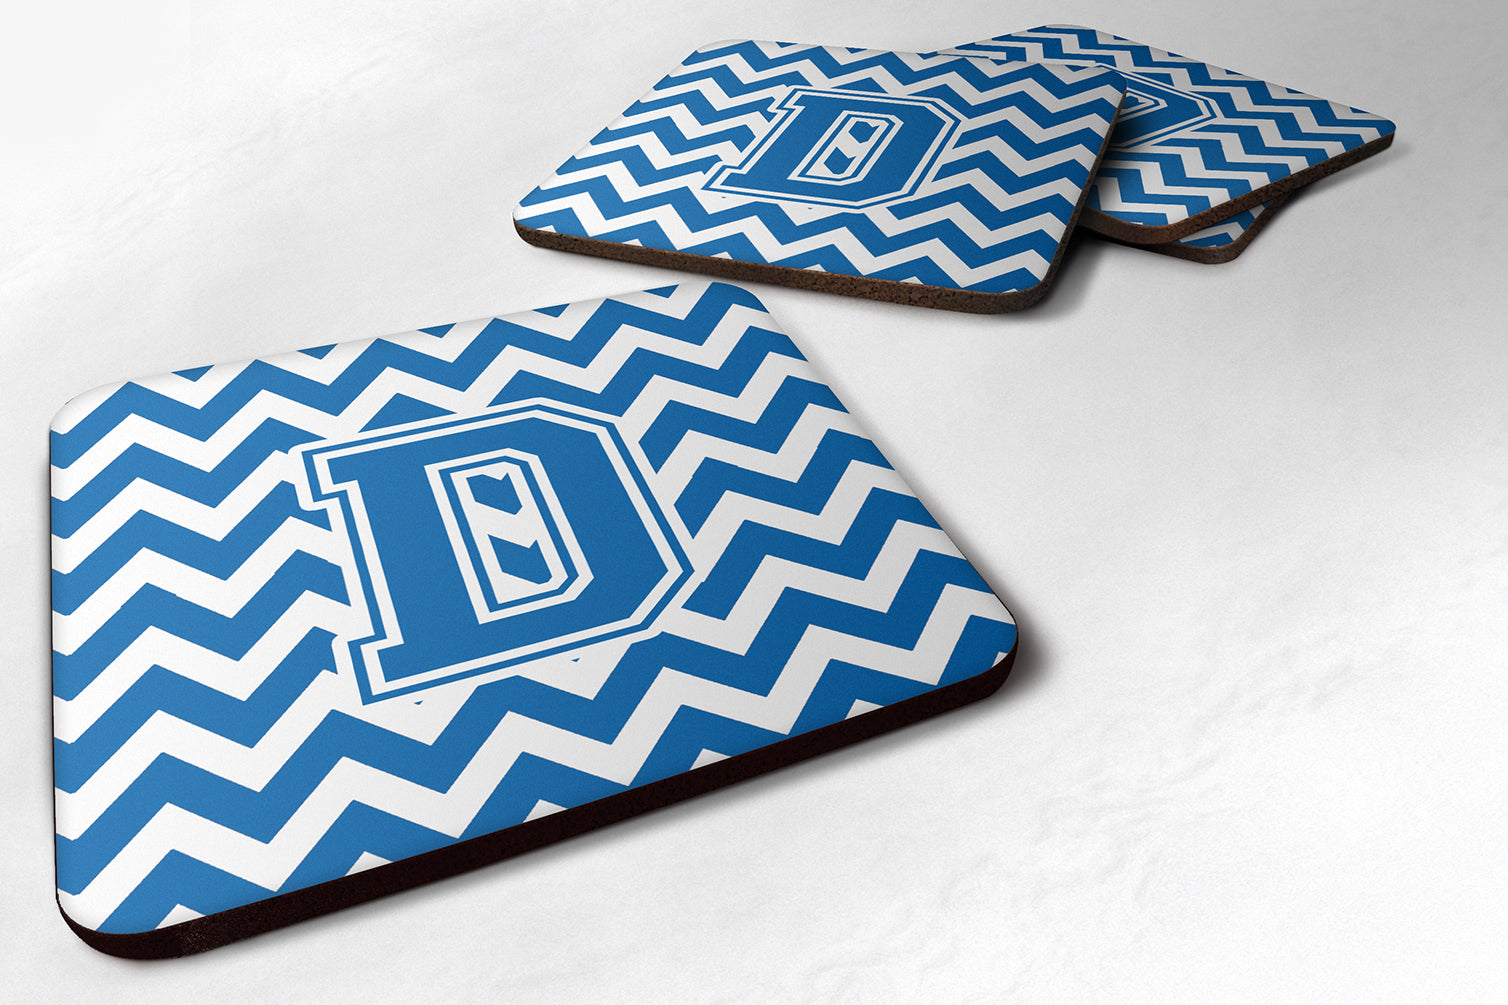 Set of 4 Letter D Chevron Blue and White Foam Coasters Set of 4 CJ1056-DFC by Caroline's Treasures